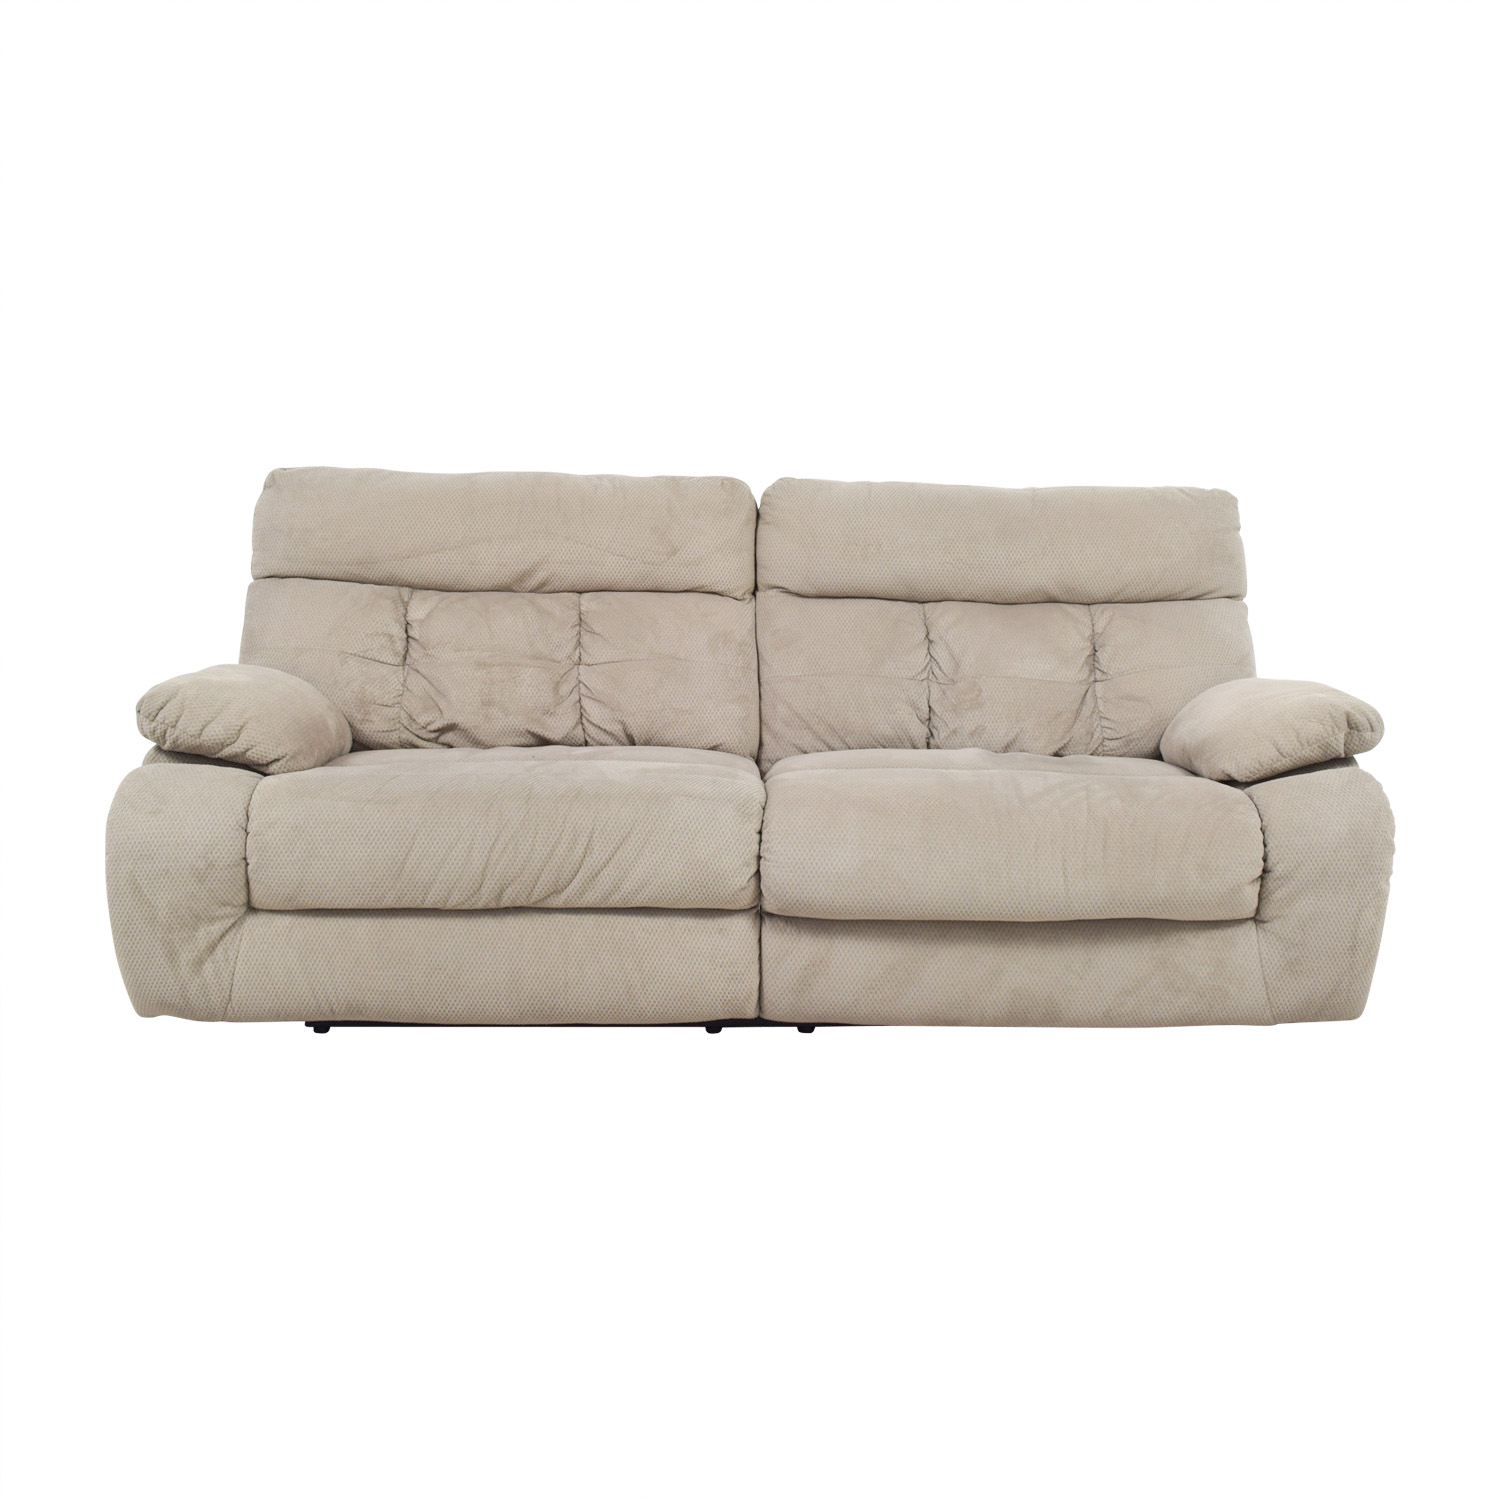 Ashley Furniture Ashley Furniture Beige Reclining Sofa second hand